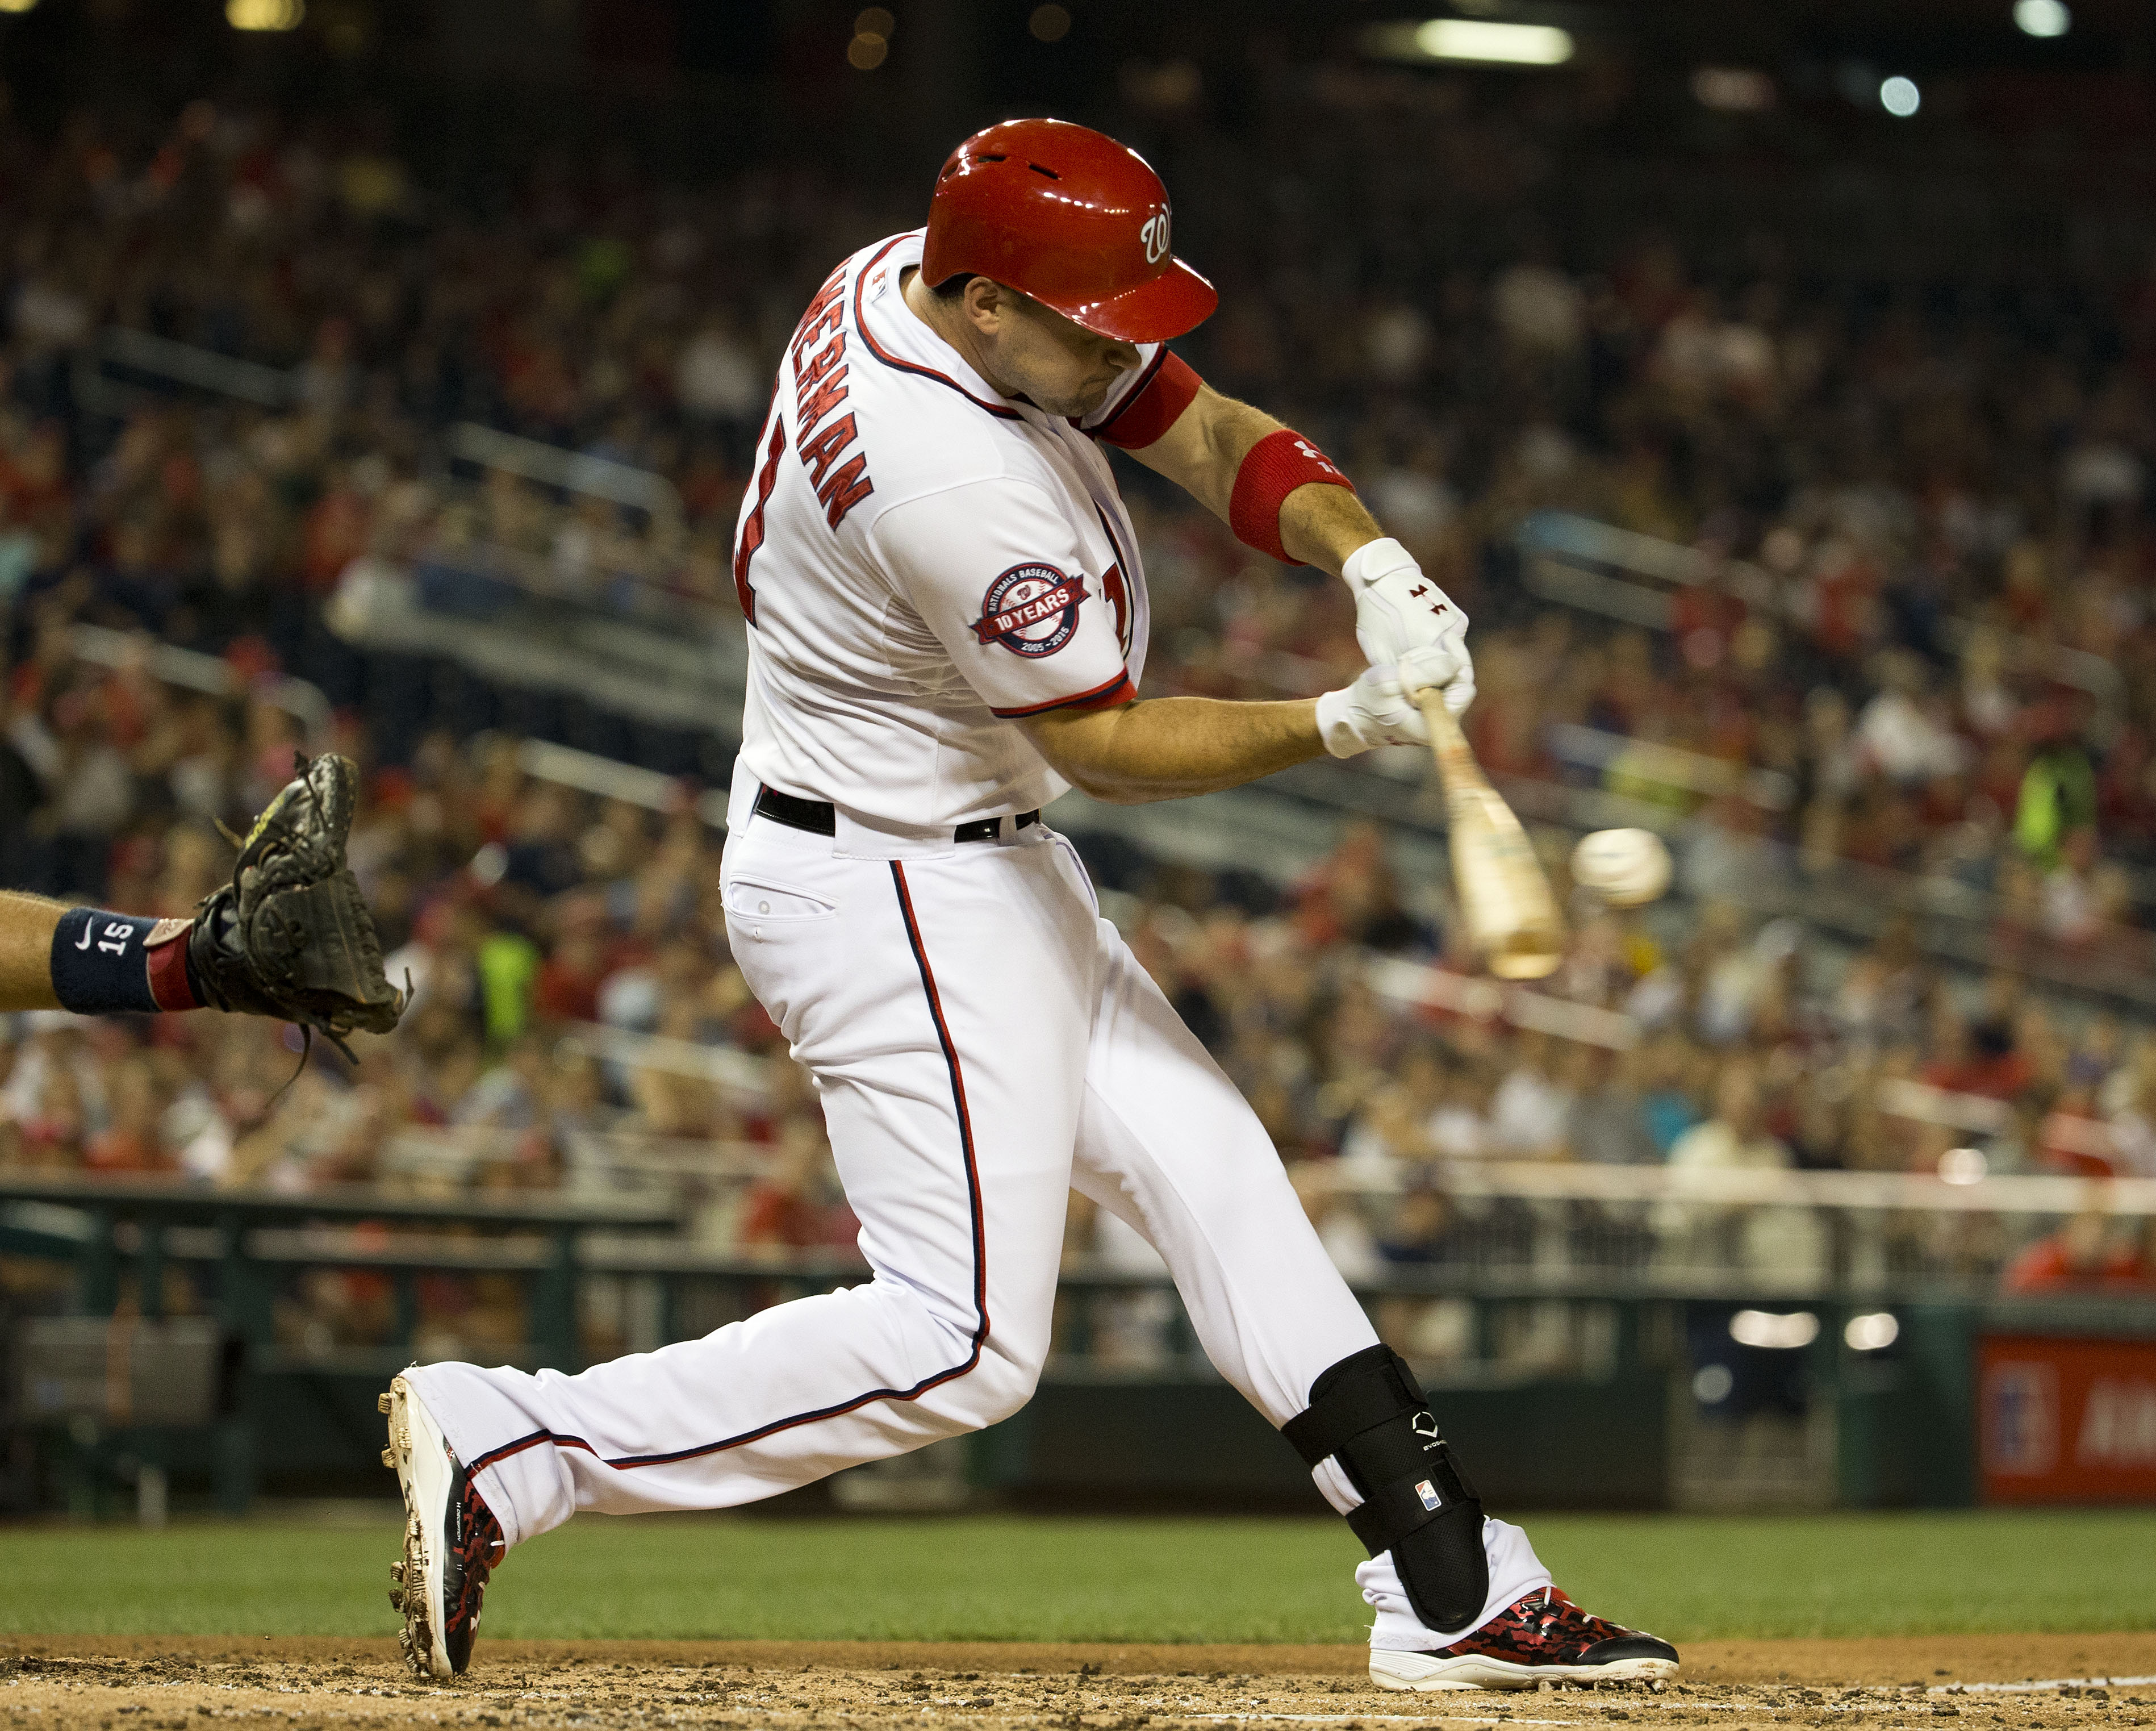 Washington Nationals' Ryan Zimmerman hits a two-run single against Atlanta Braves relief pitcher Andrew McKirahan during the third inning of a baseball game at Nationals Park, Thursday, Sept. 3, 2015, in Washington. Nationals' Jayson Werth and Anthony Ren